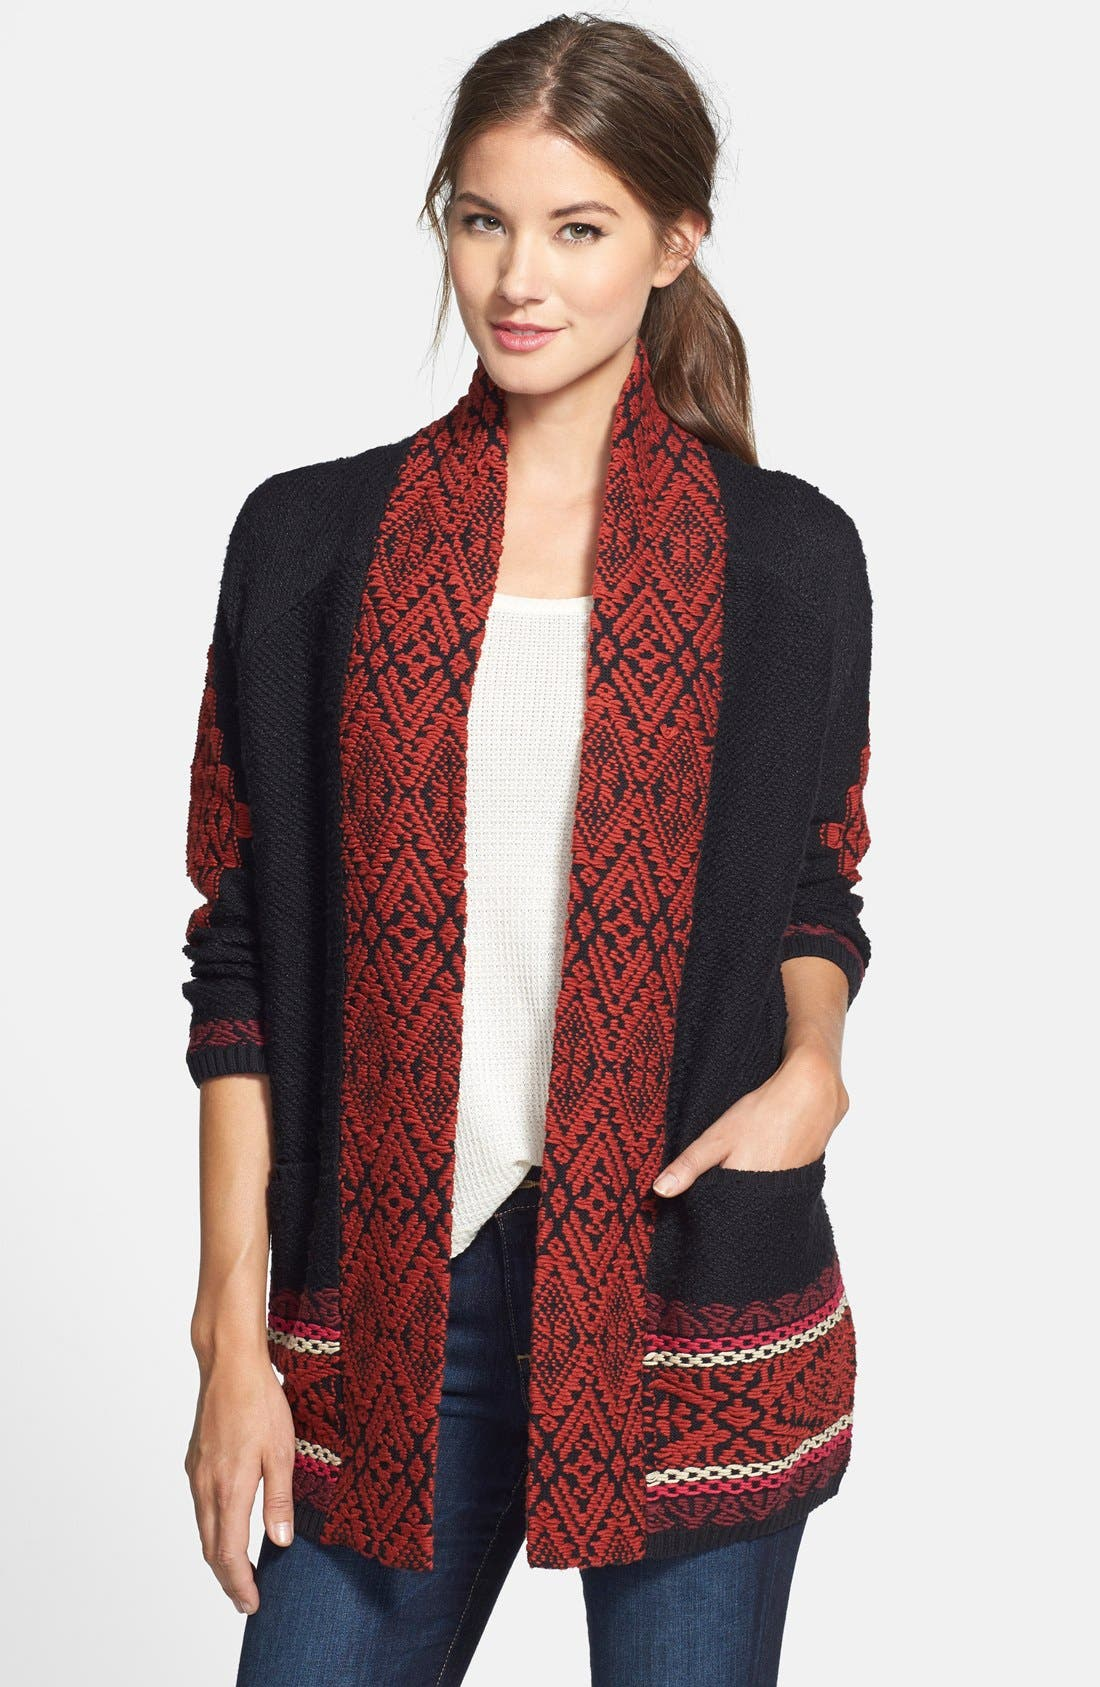 Alternate Image 1 Selected - Lucky Brand Jacquard Sweater Coat